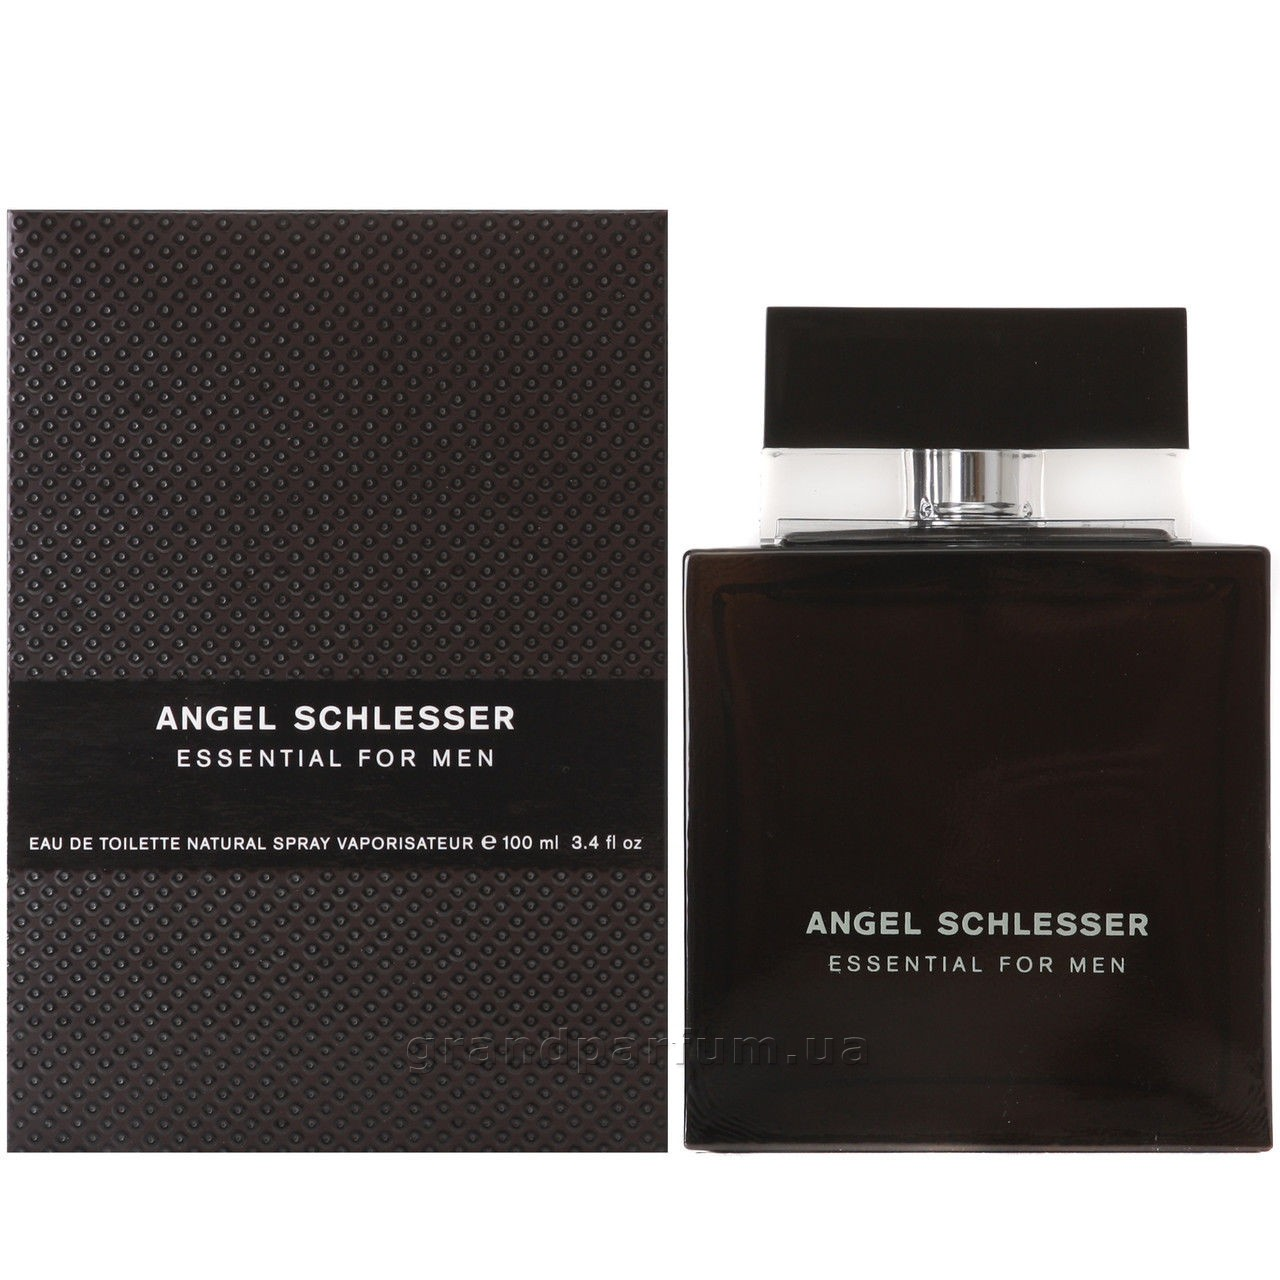 Купить Angel Schlesser Essential for Men от